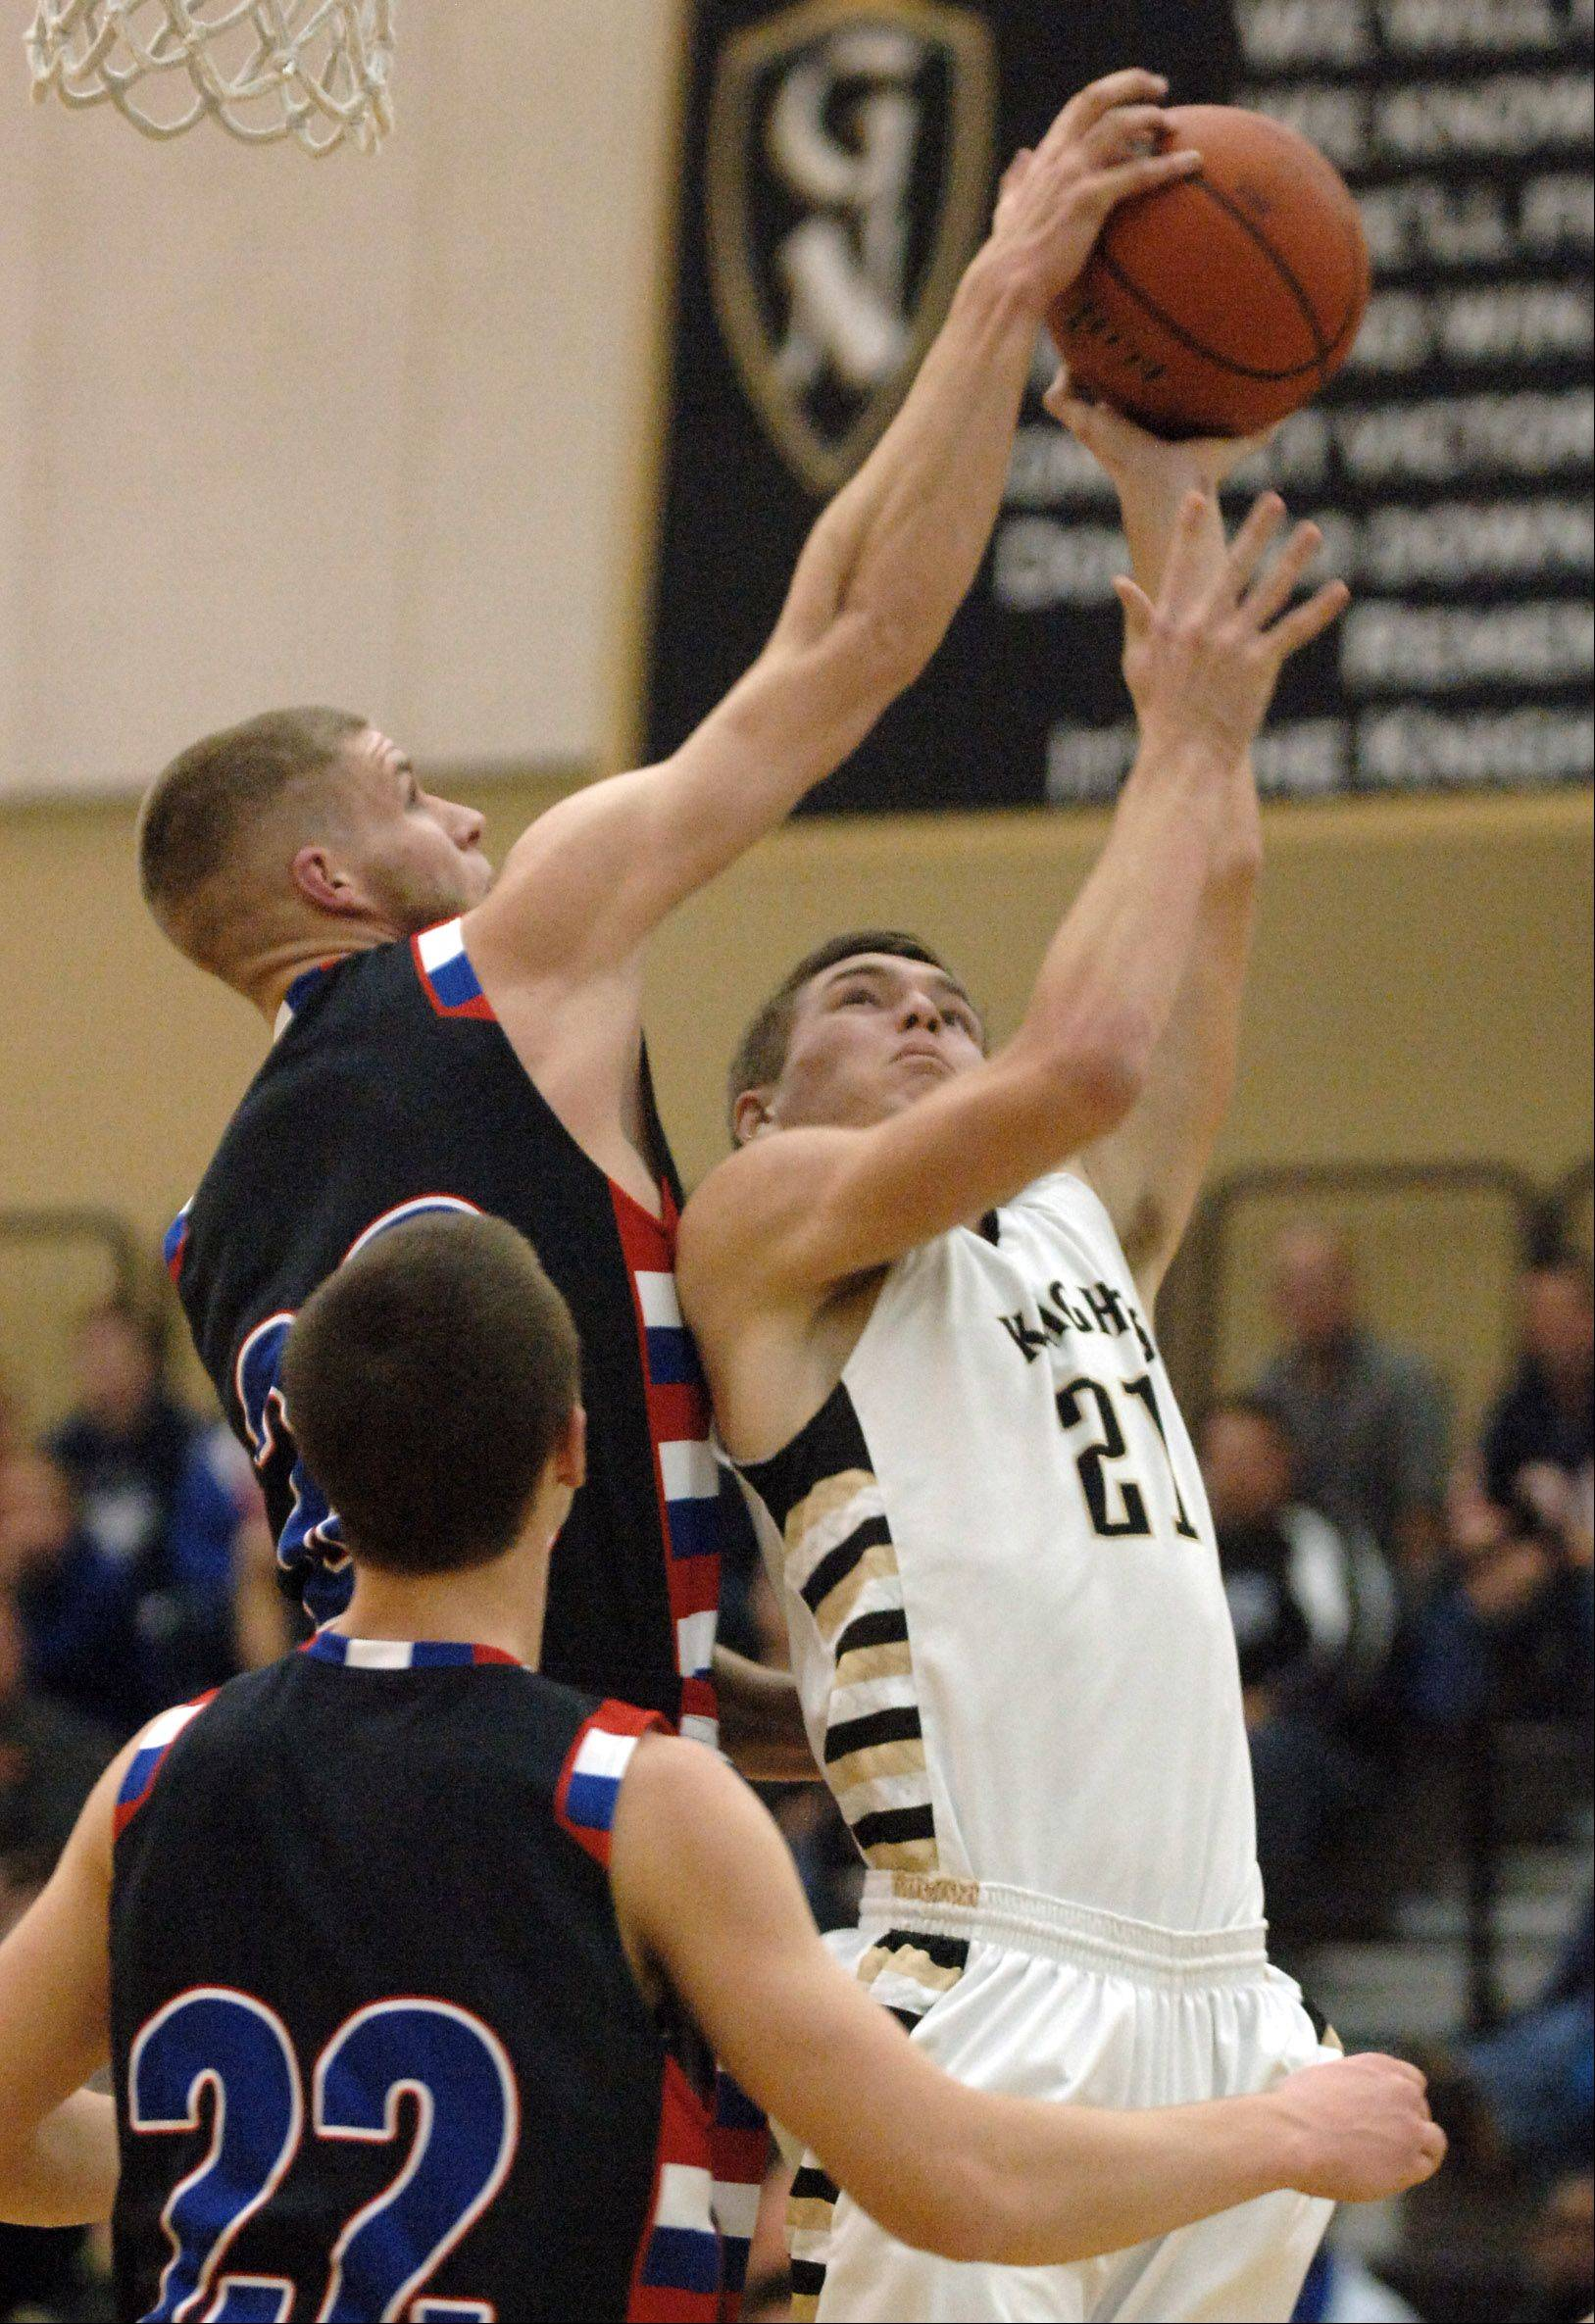 Lakes' Jake Kohler blocks the shot of Grayslake North's Ben Smith during Friday's game in Grayslake.